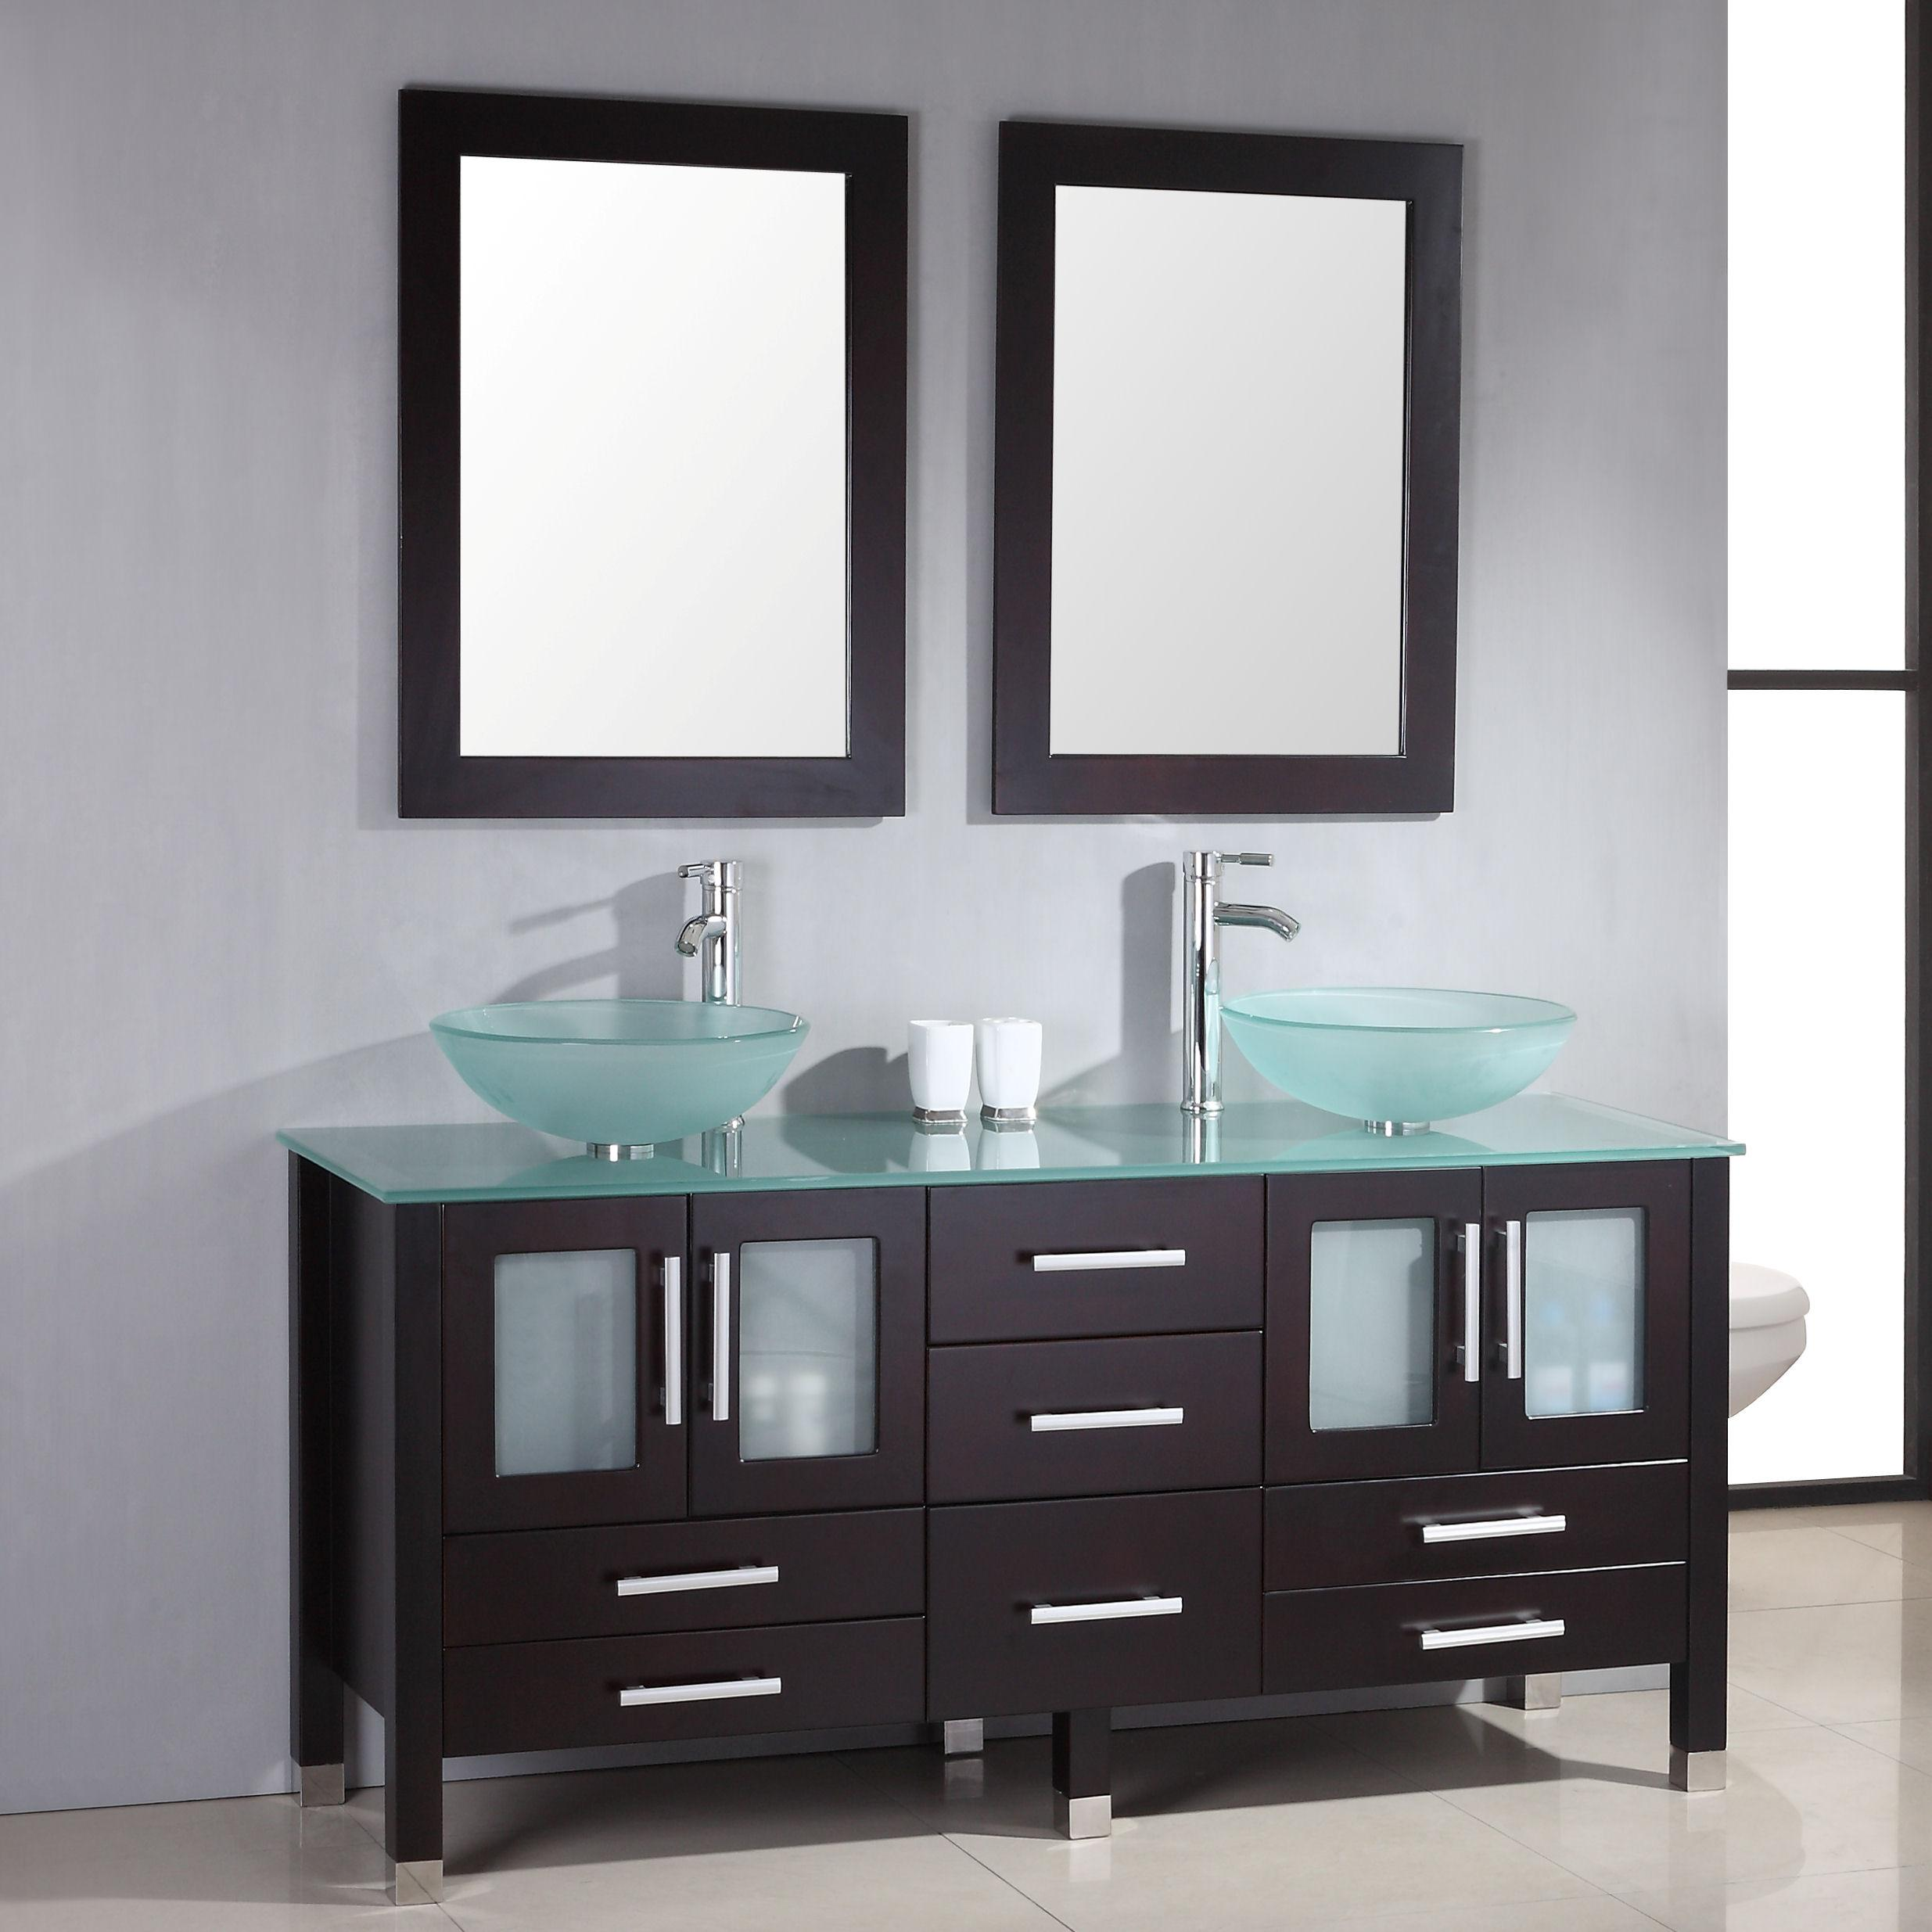 vanities the depot vanity naples without p w home white drawer d decorators x in inch drawers cabinet with bath collection tops